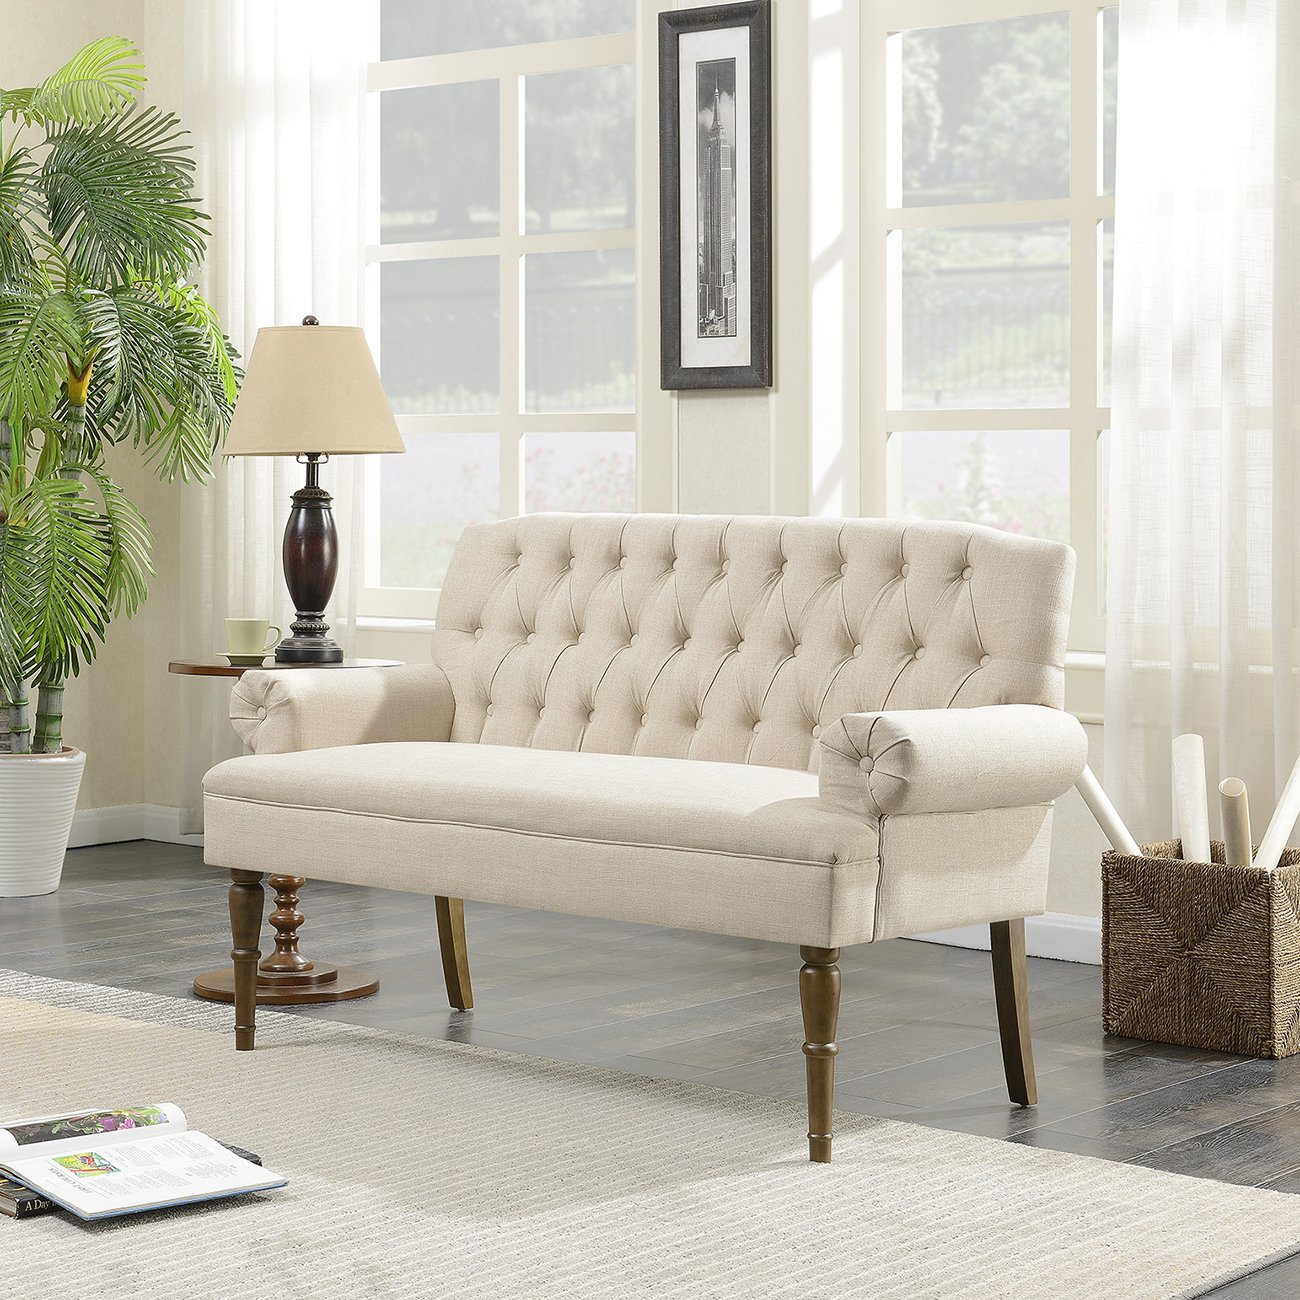 Belleze Button Tufted Mid-Century Settee Upholstered Vintage Sofa Bench with Linen Fabric Wood Legs, White by Belleze